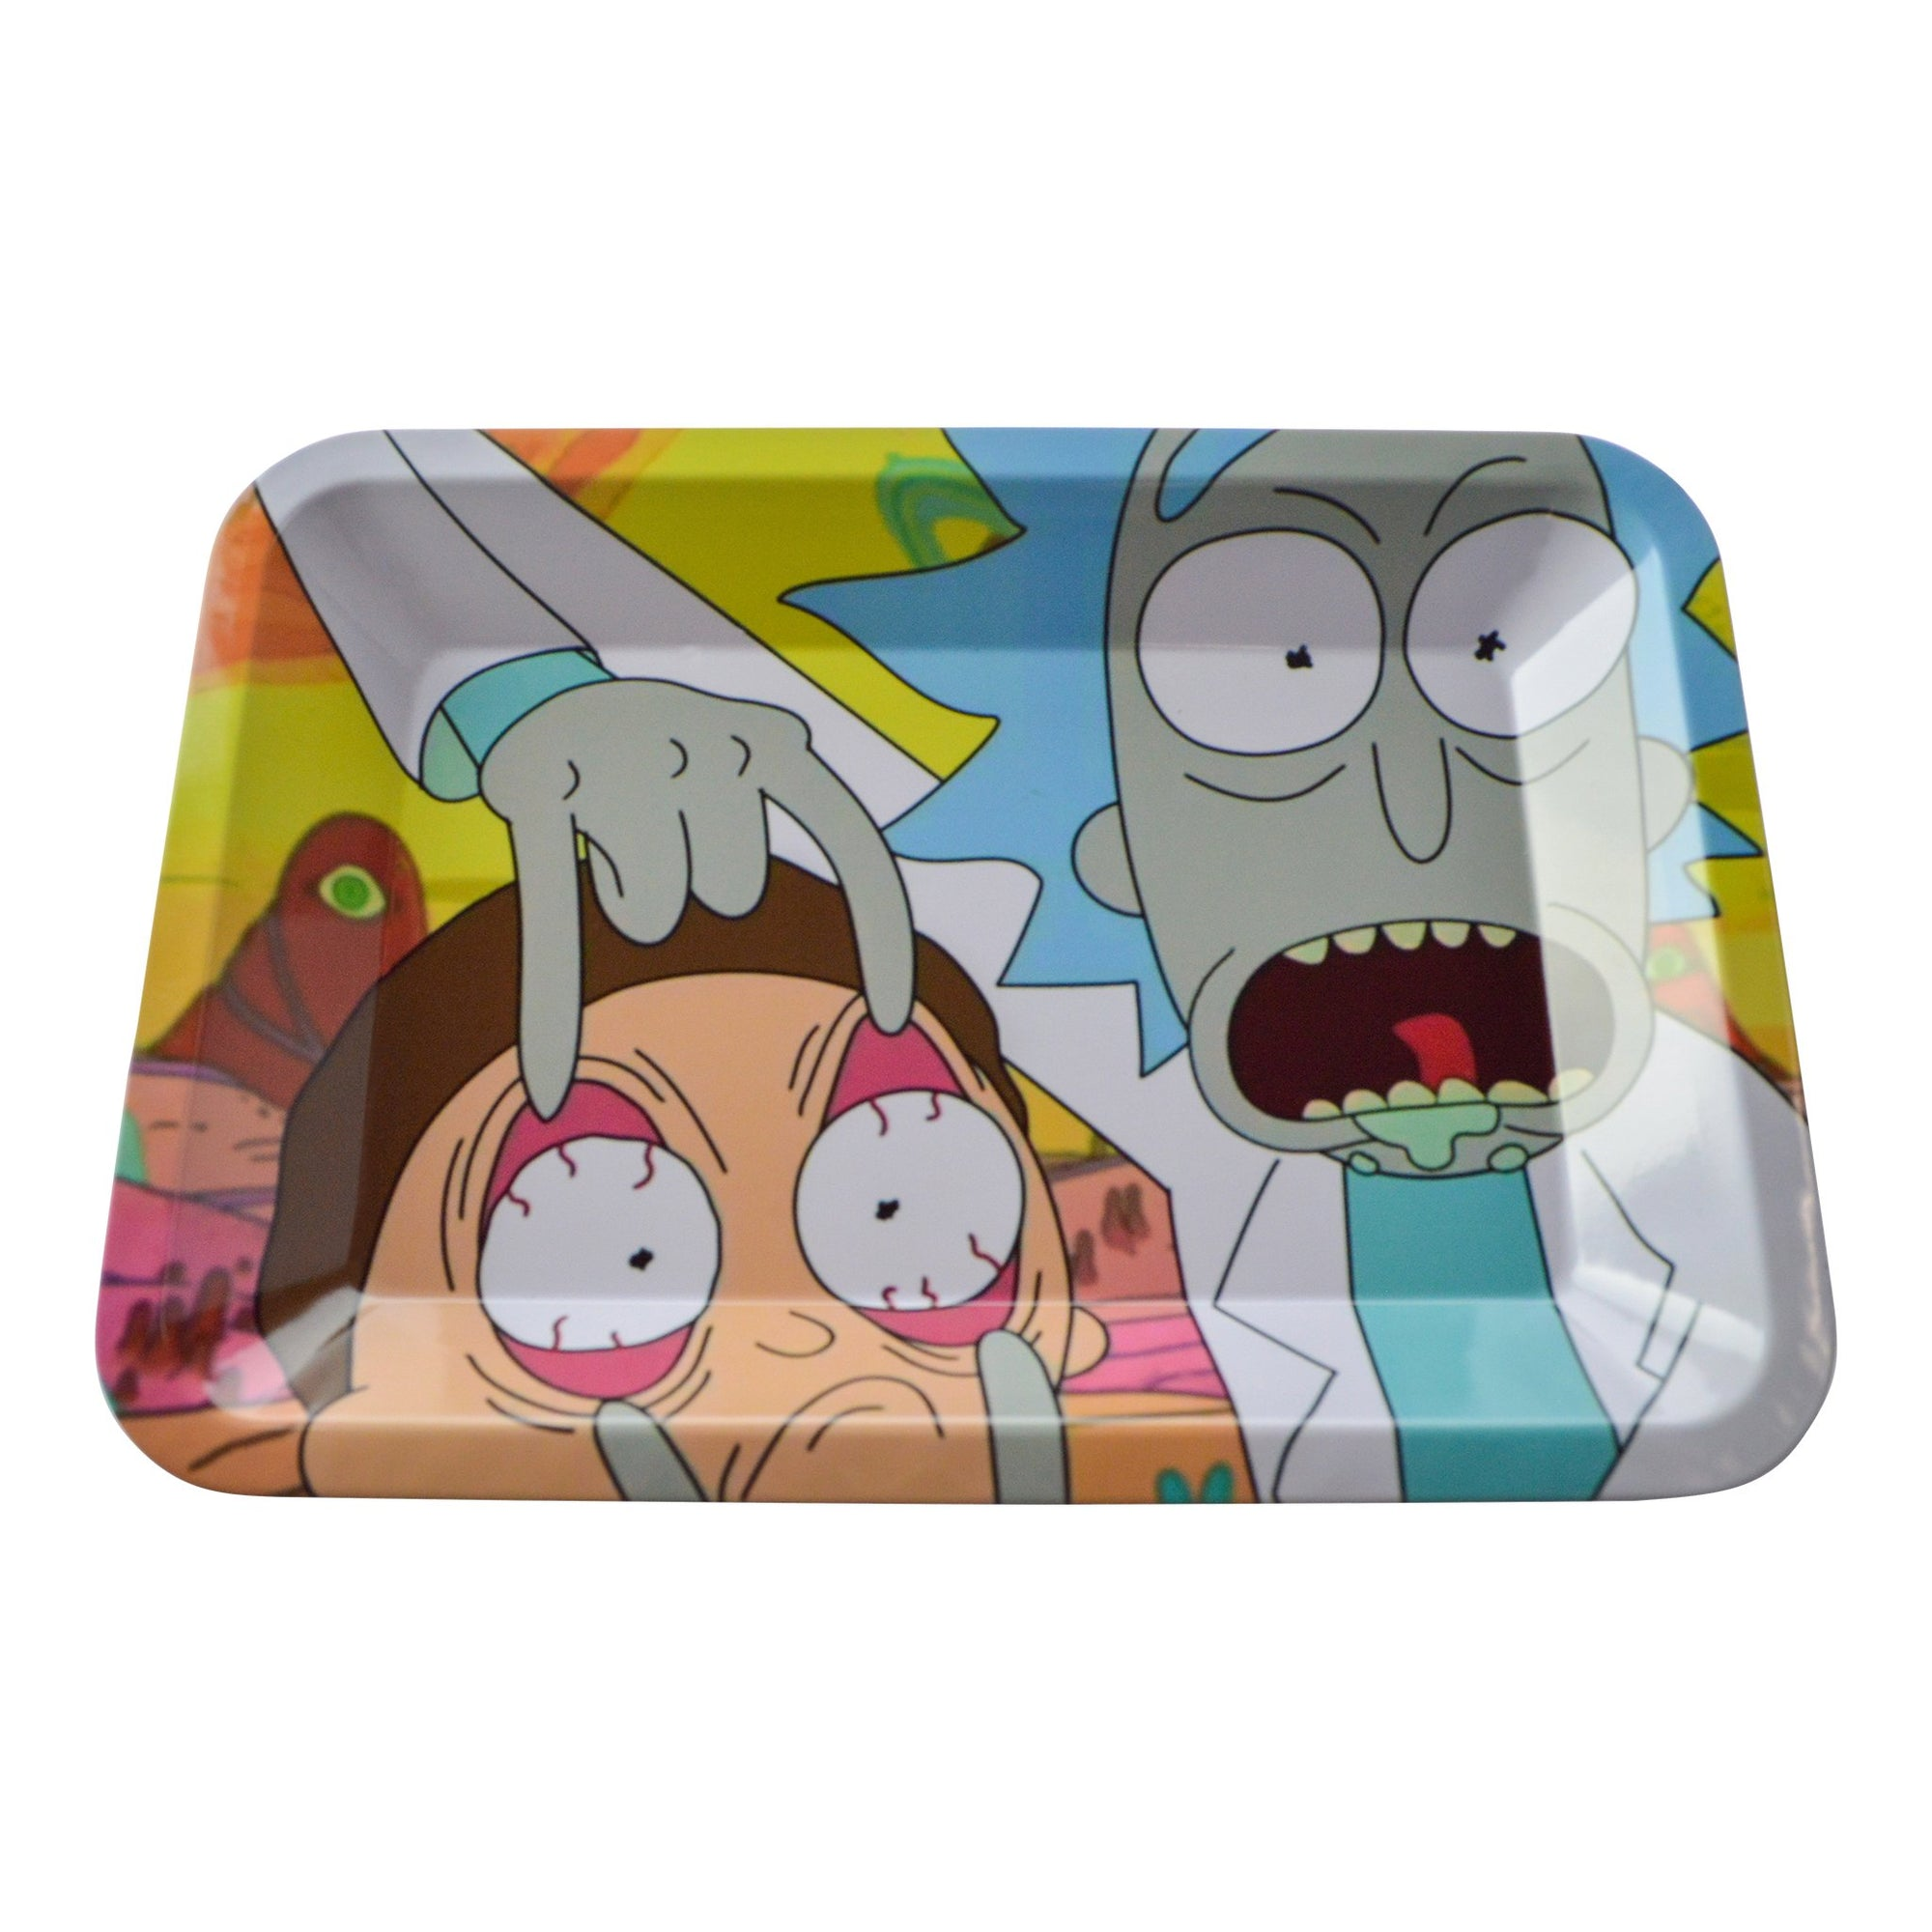 Look Morty Metal Rolling Tray - 7in